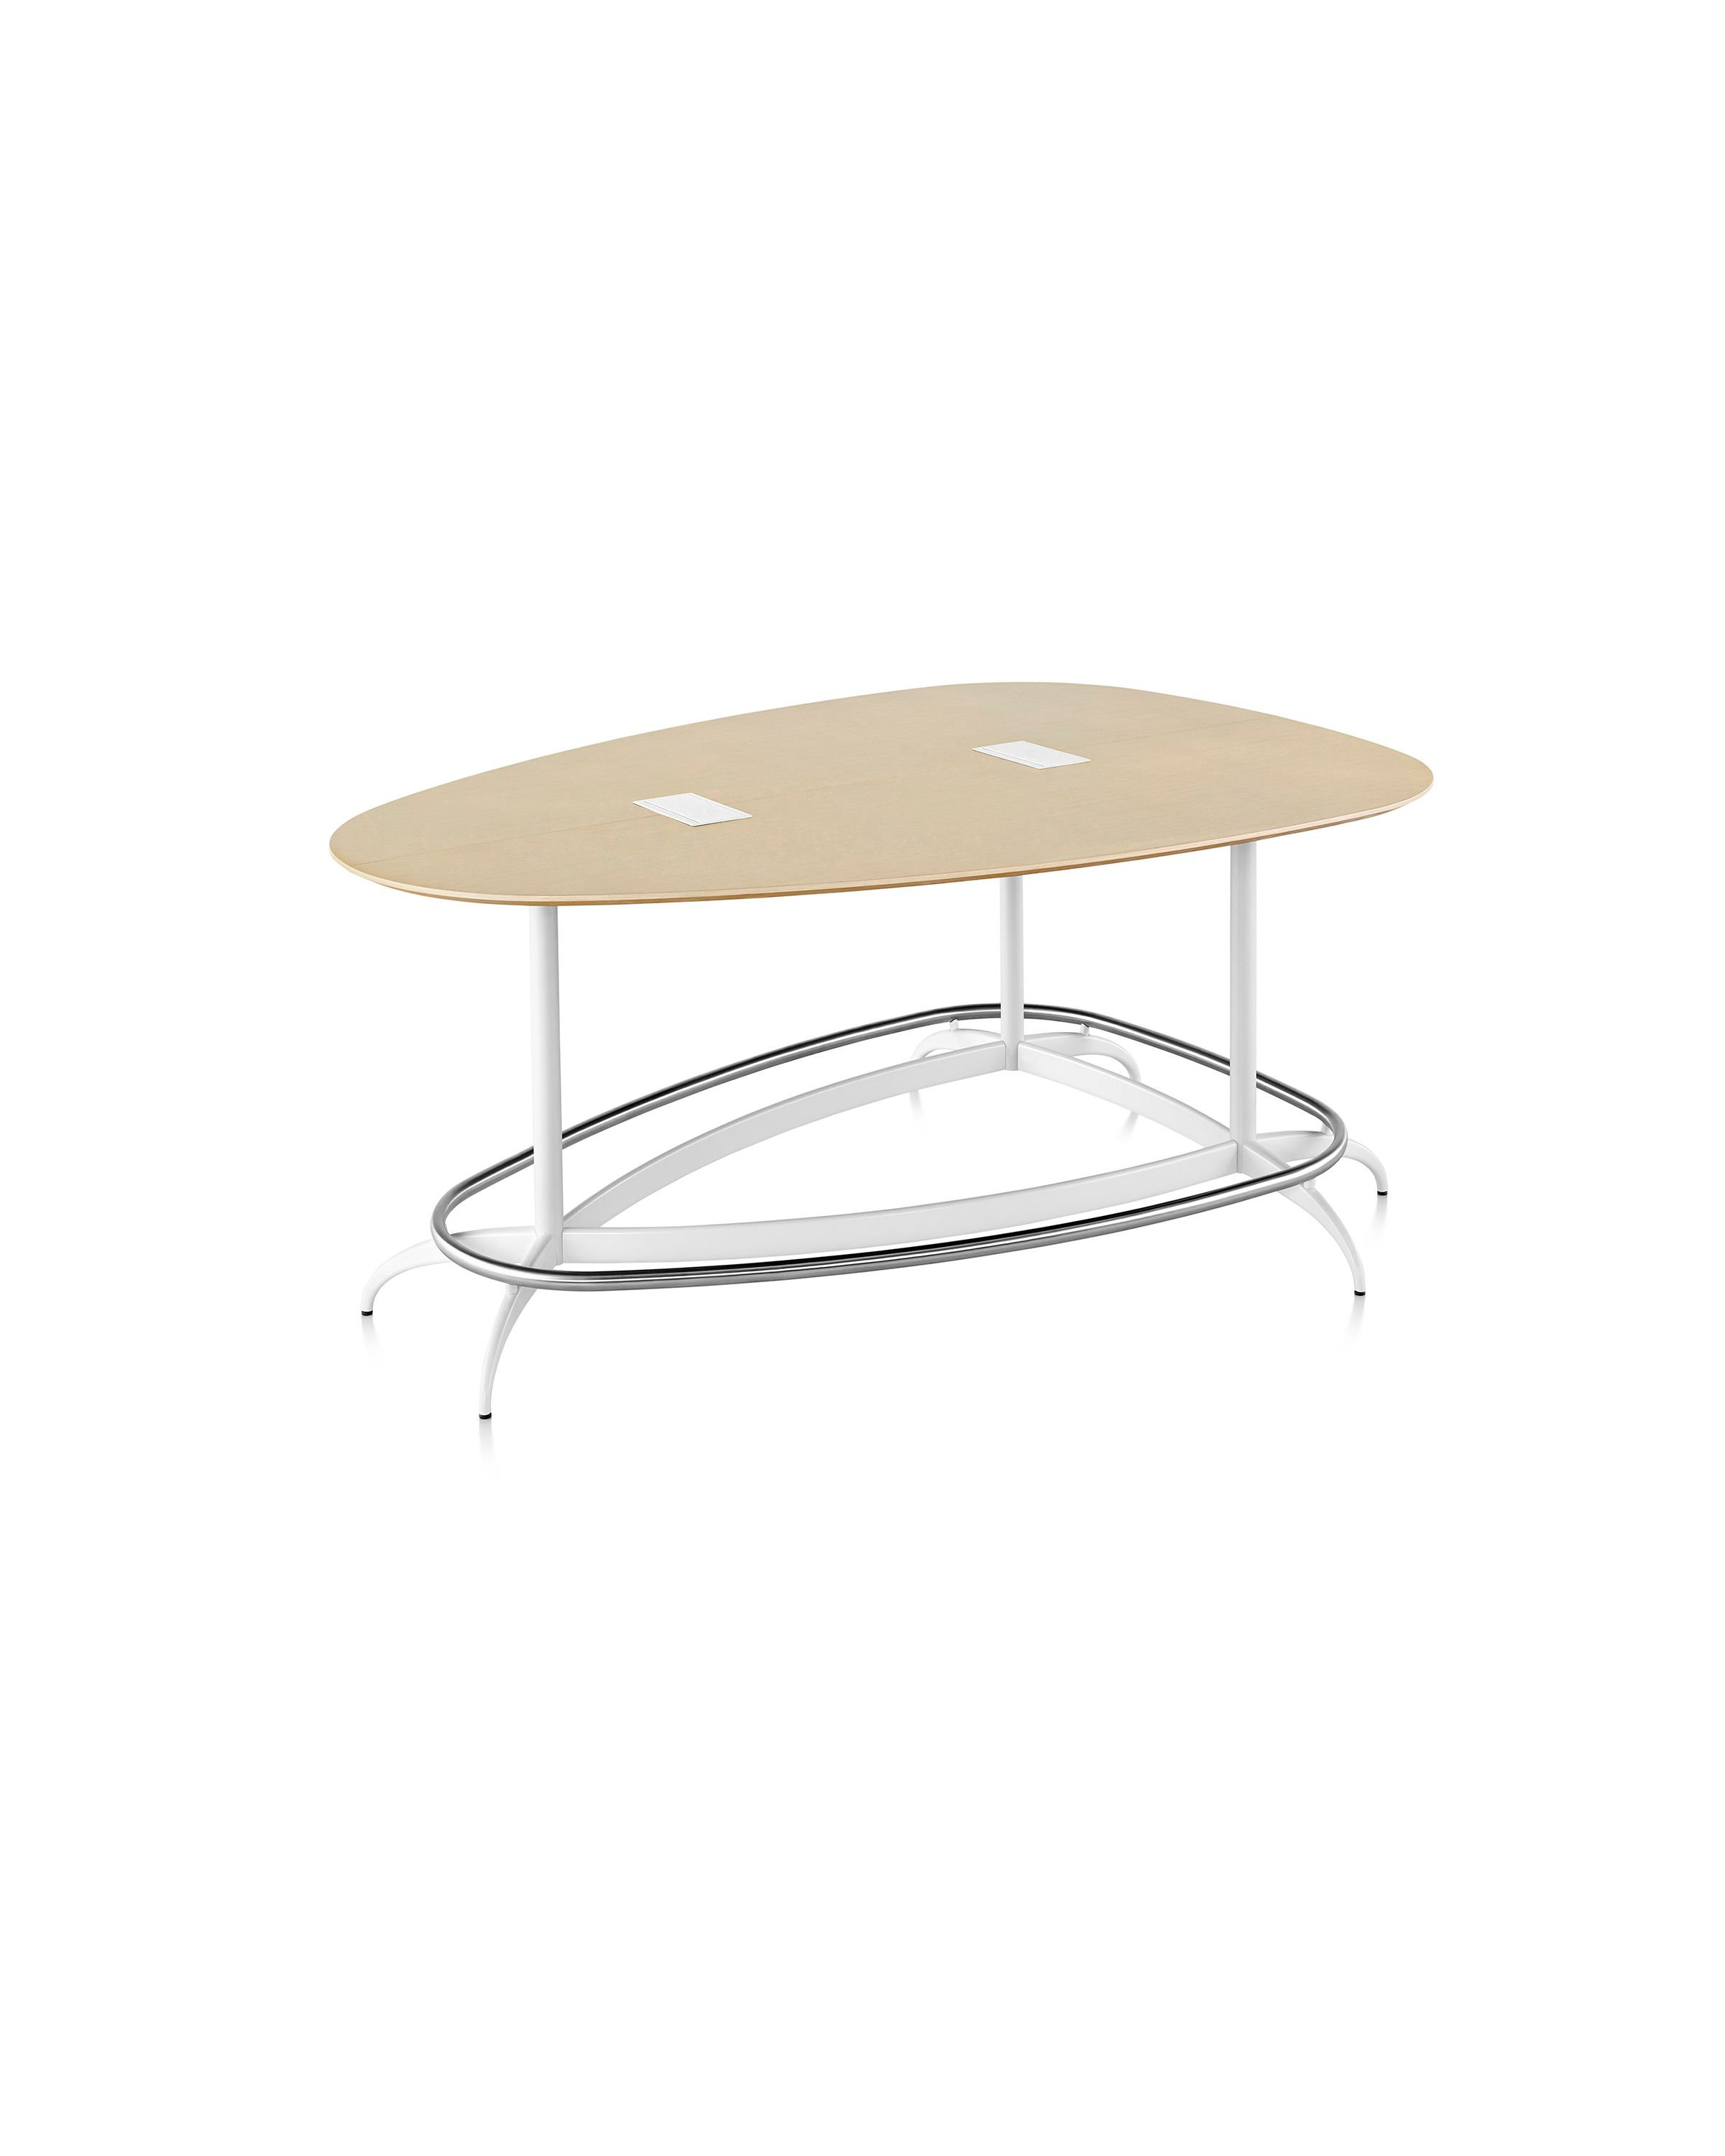 Products For Jalapeno Trading Authorized Herman Miller Dealer